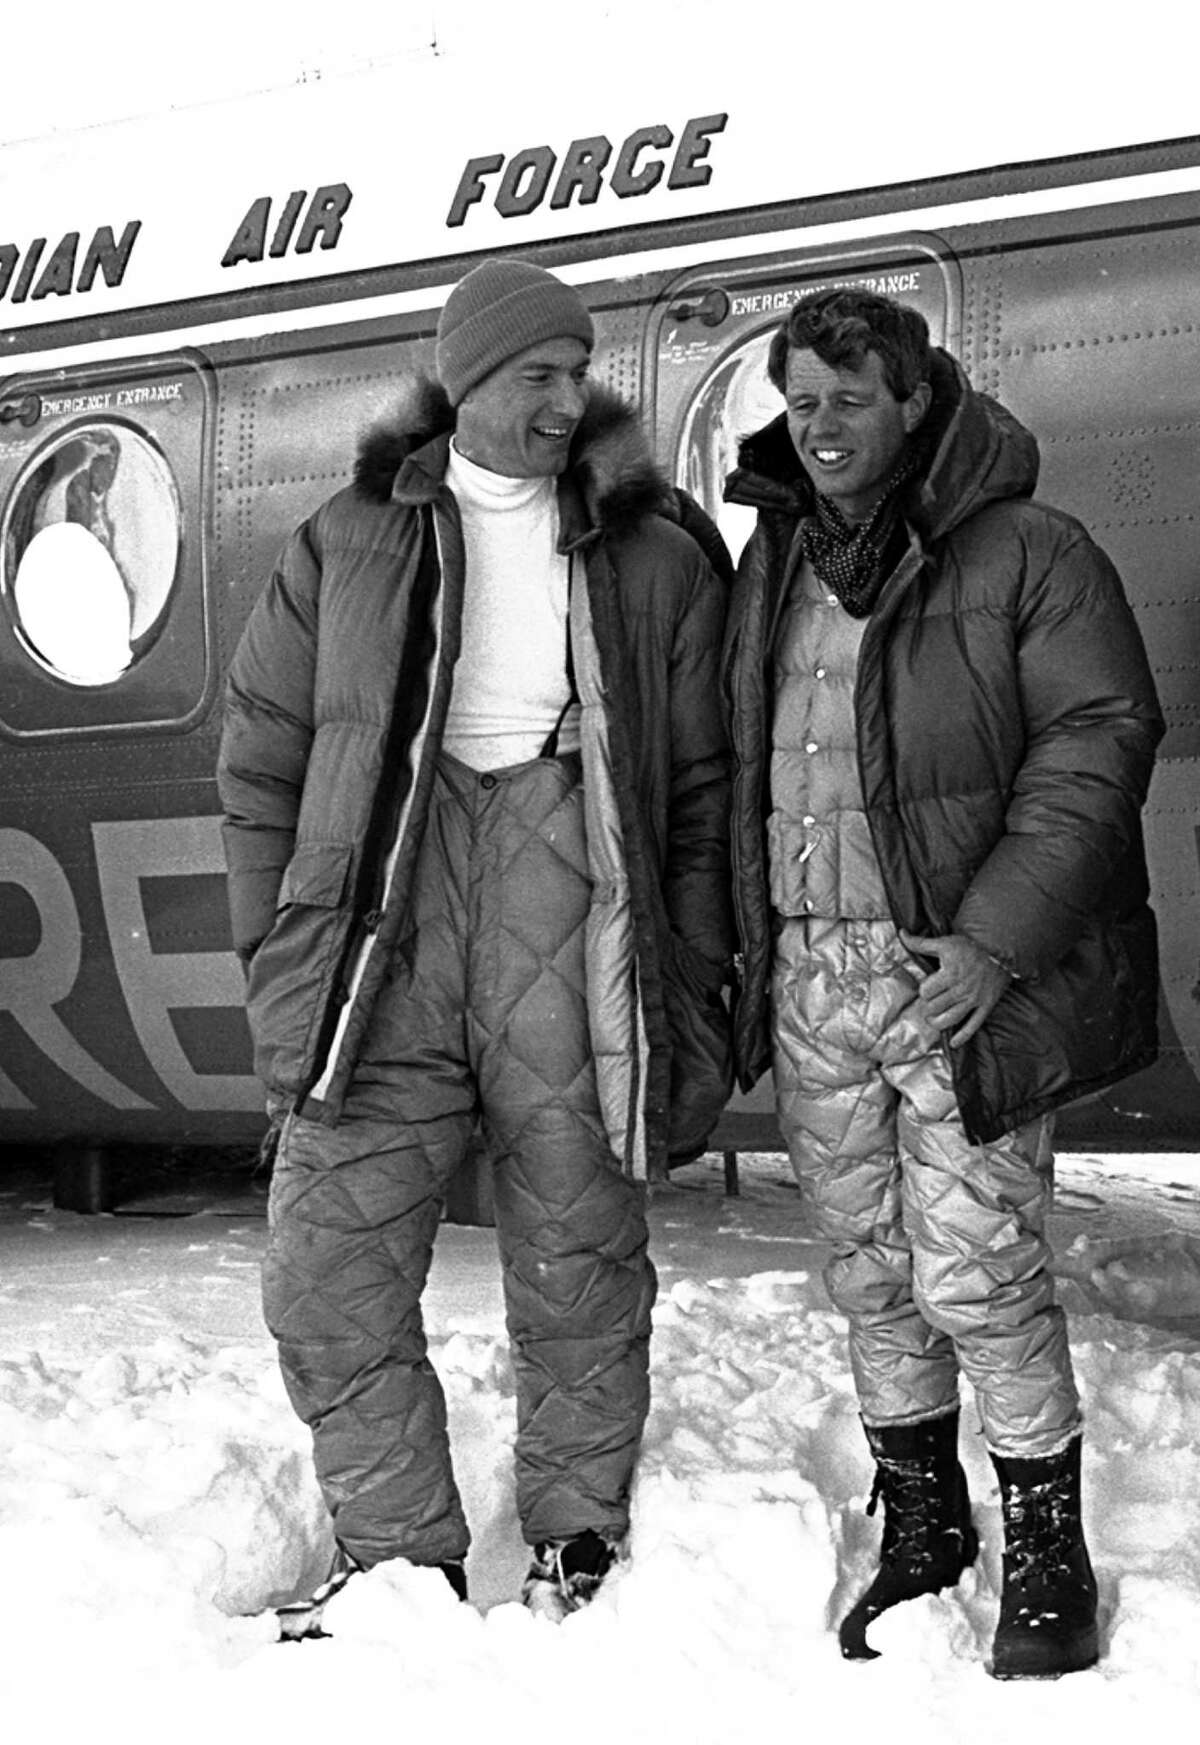 Jim Whittaker, wearing knit cap, and Senator Robert F. Kennedy, are shown arriving at the base camp of Mt. Kennedy, 150 miles west of Whitehorse, Yukon Territory, Canada, March 24, 1965. Artist/mapmaker/author Dee Molenaar was another member of the first ascent of 13,944-foot peak. (AP Photo/Doug Wilson)